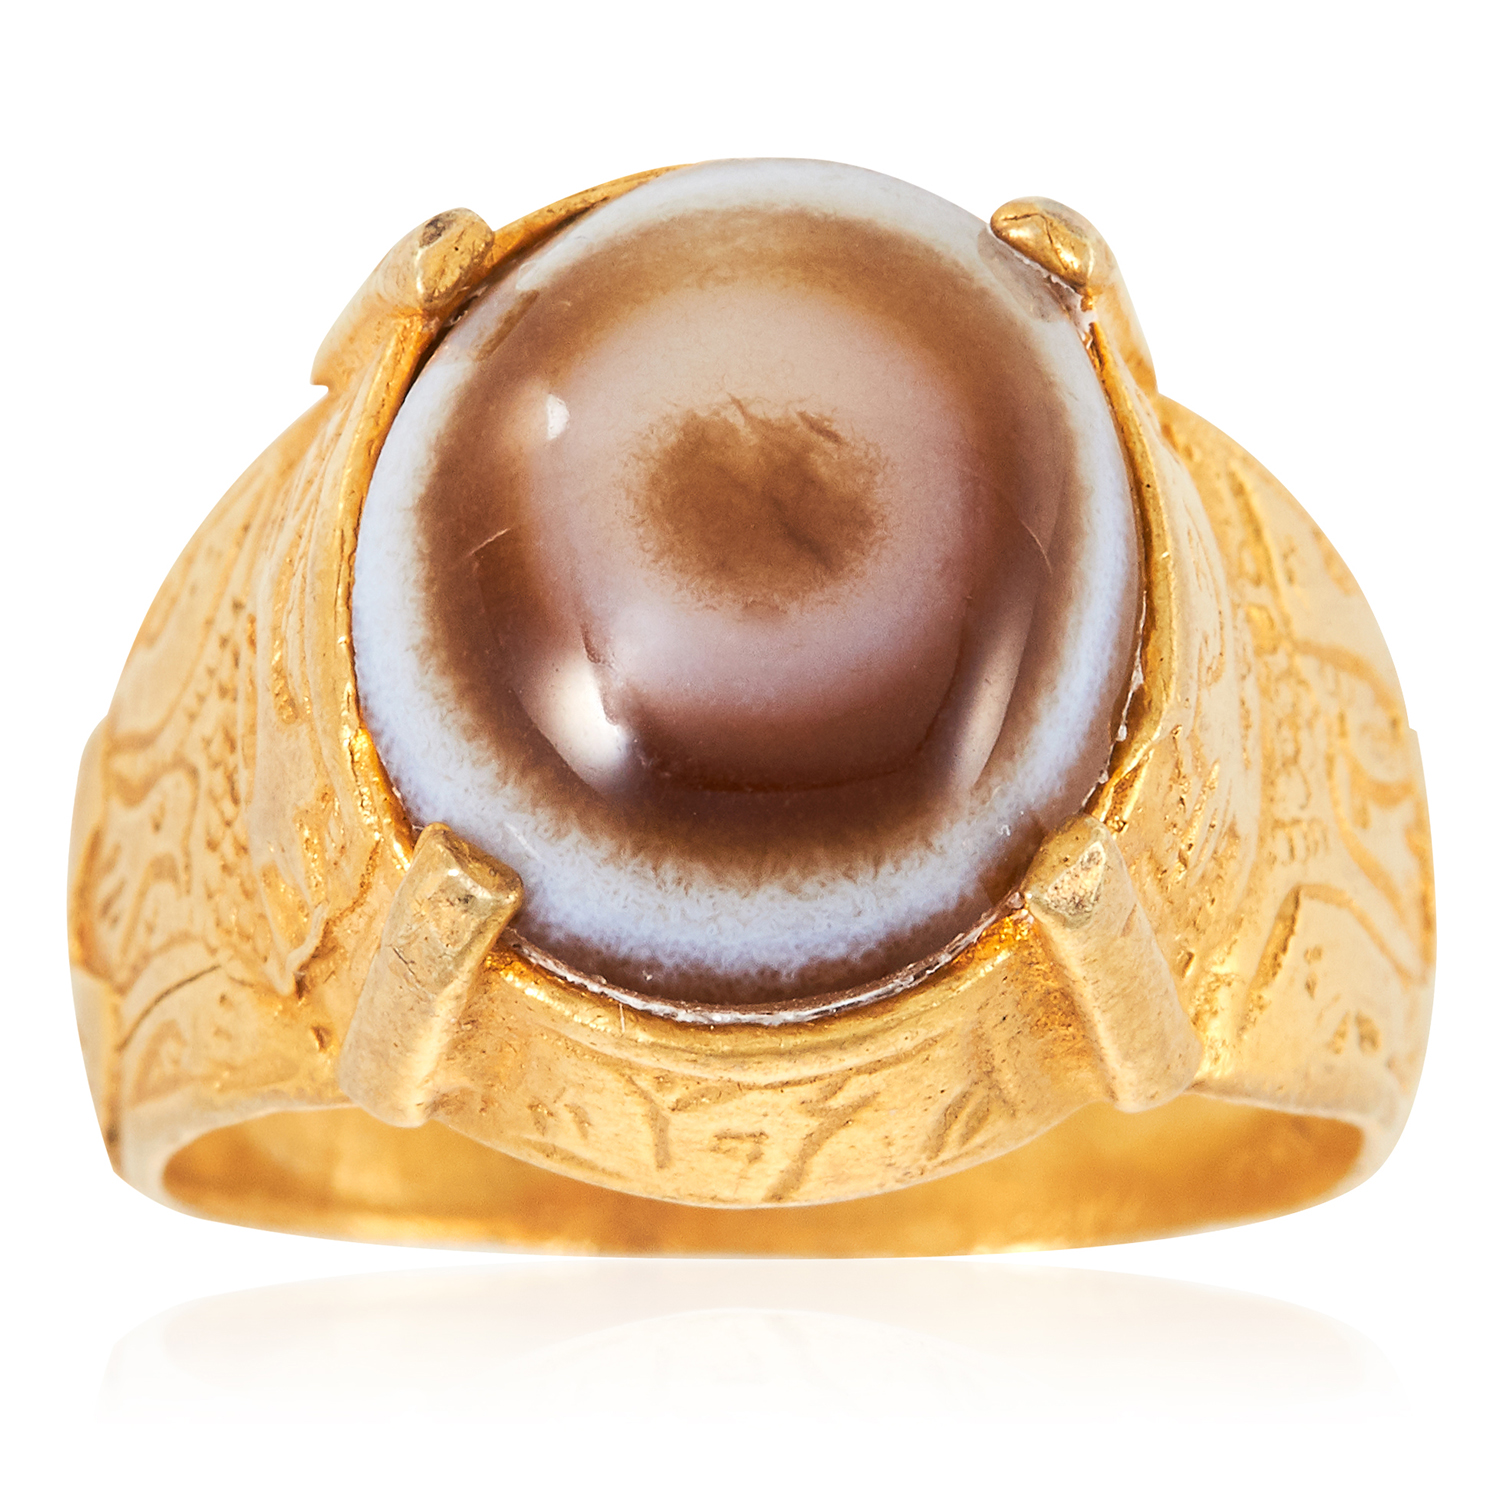 AN ANTIQUE HARDSTONE DRESS RING in high carat yellow gold, set with a cabochon hardstone in engraved